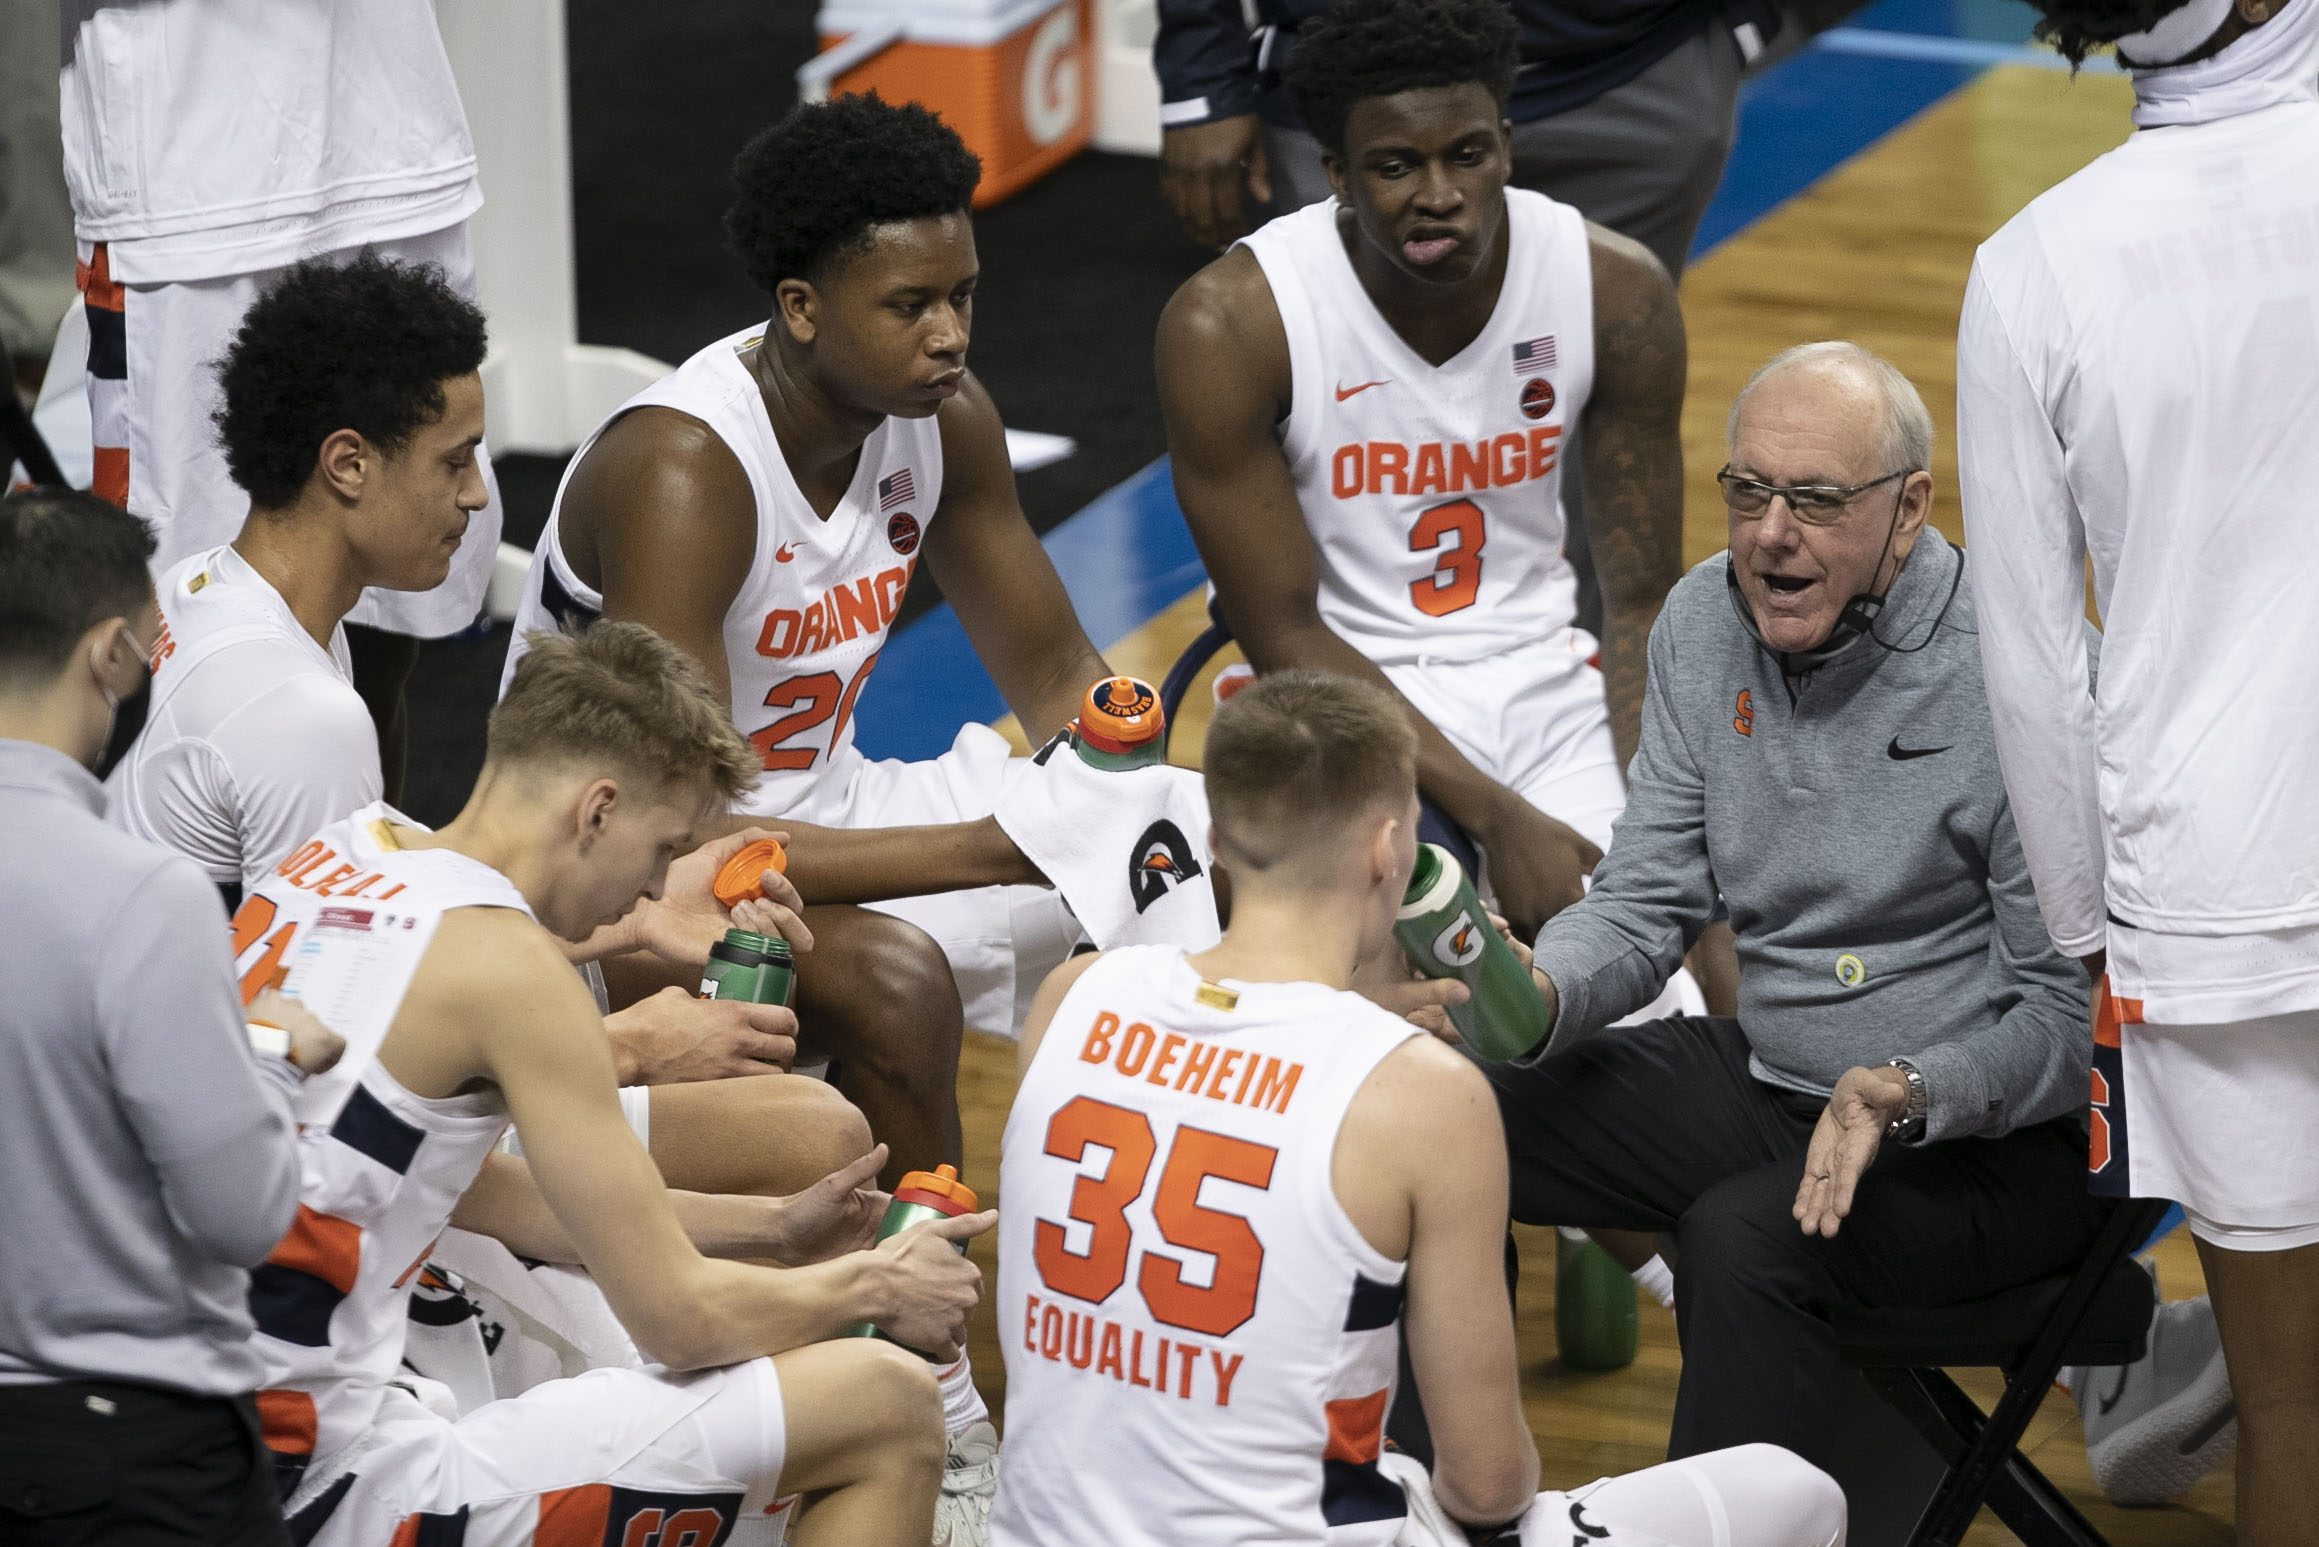 Syracuse coach Jim Boeheim talks with his players during a time-out in the first half against N.C. State on Wednesday, March 10, 2021 during the ACC Tournament at the Greensboro Coliseum in Greensboro, N.C.